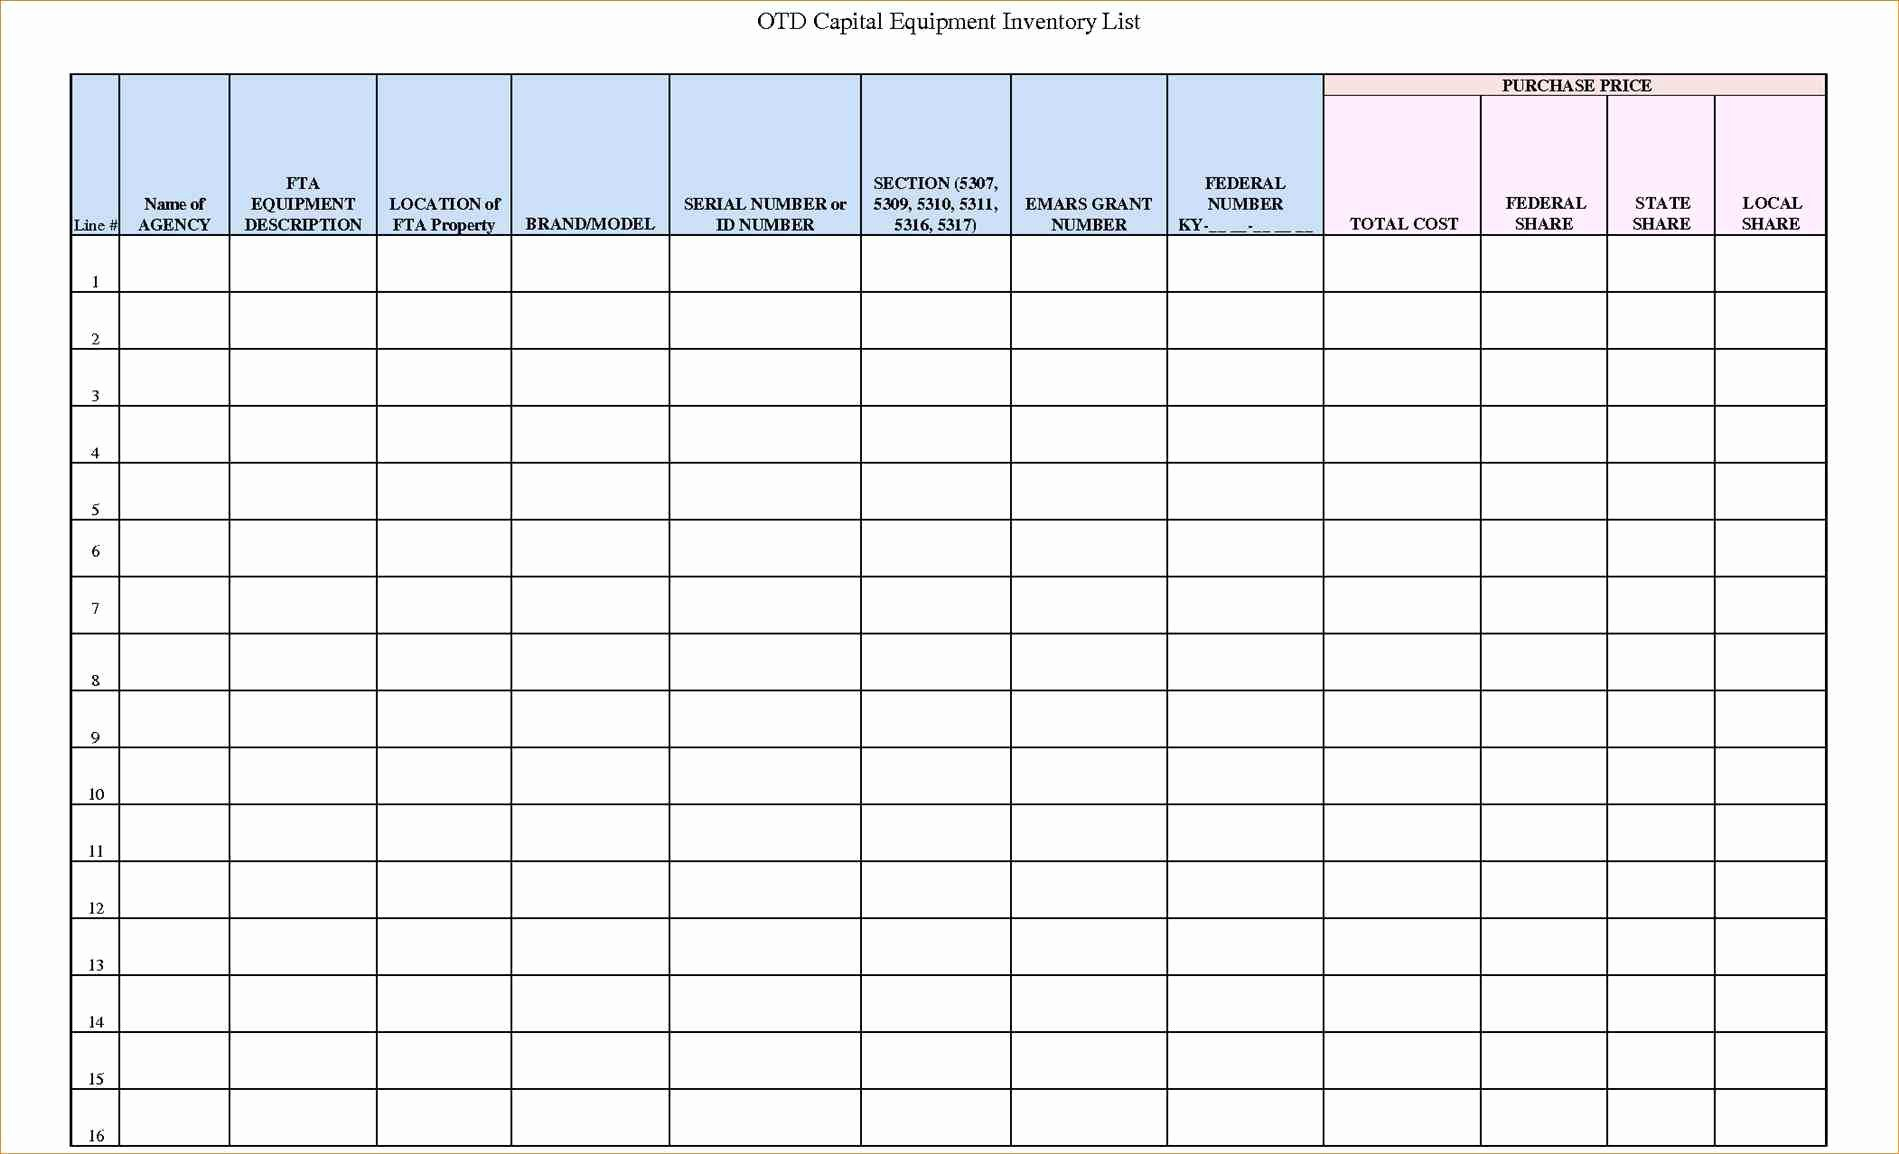 Excel Inventory Template with Pictures Unique Excel Inventory Template with formulas